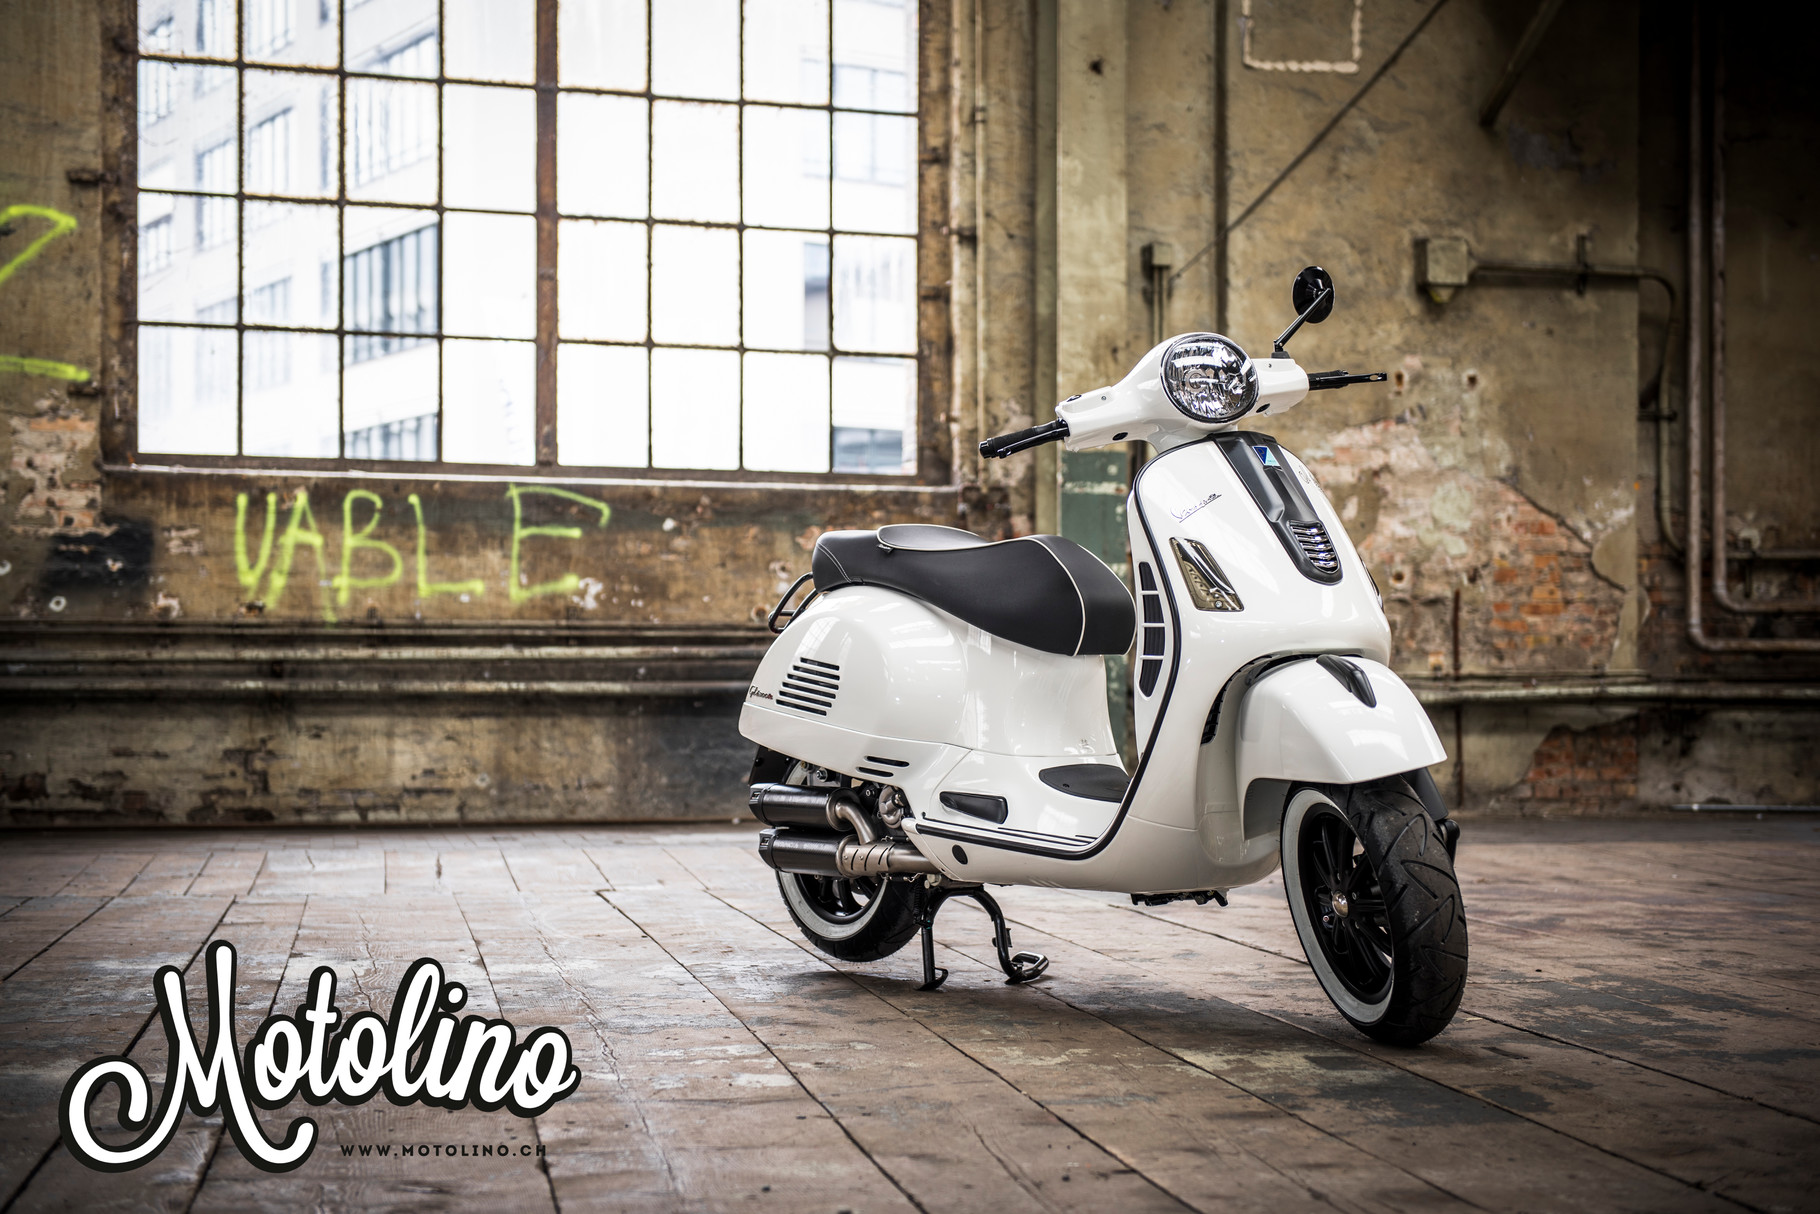 vespa gts 300 tuning special umbau 13 zoll weiss zrich tuttich. Black Bedroom Furniture Sets. Home Design Ideas